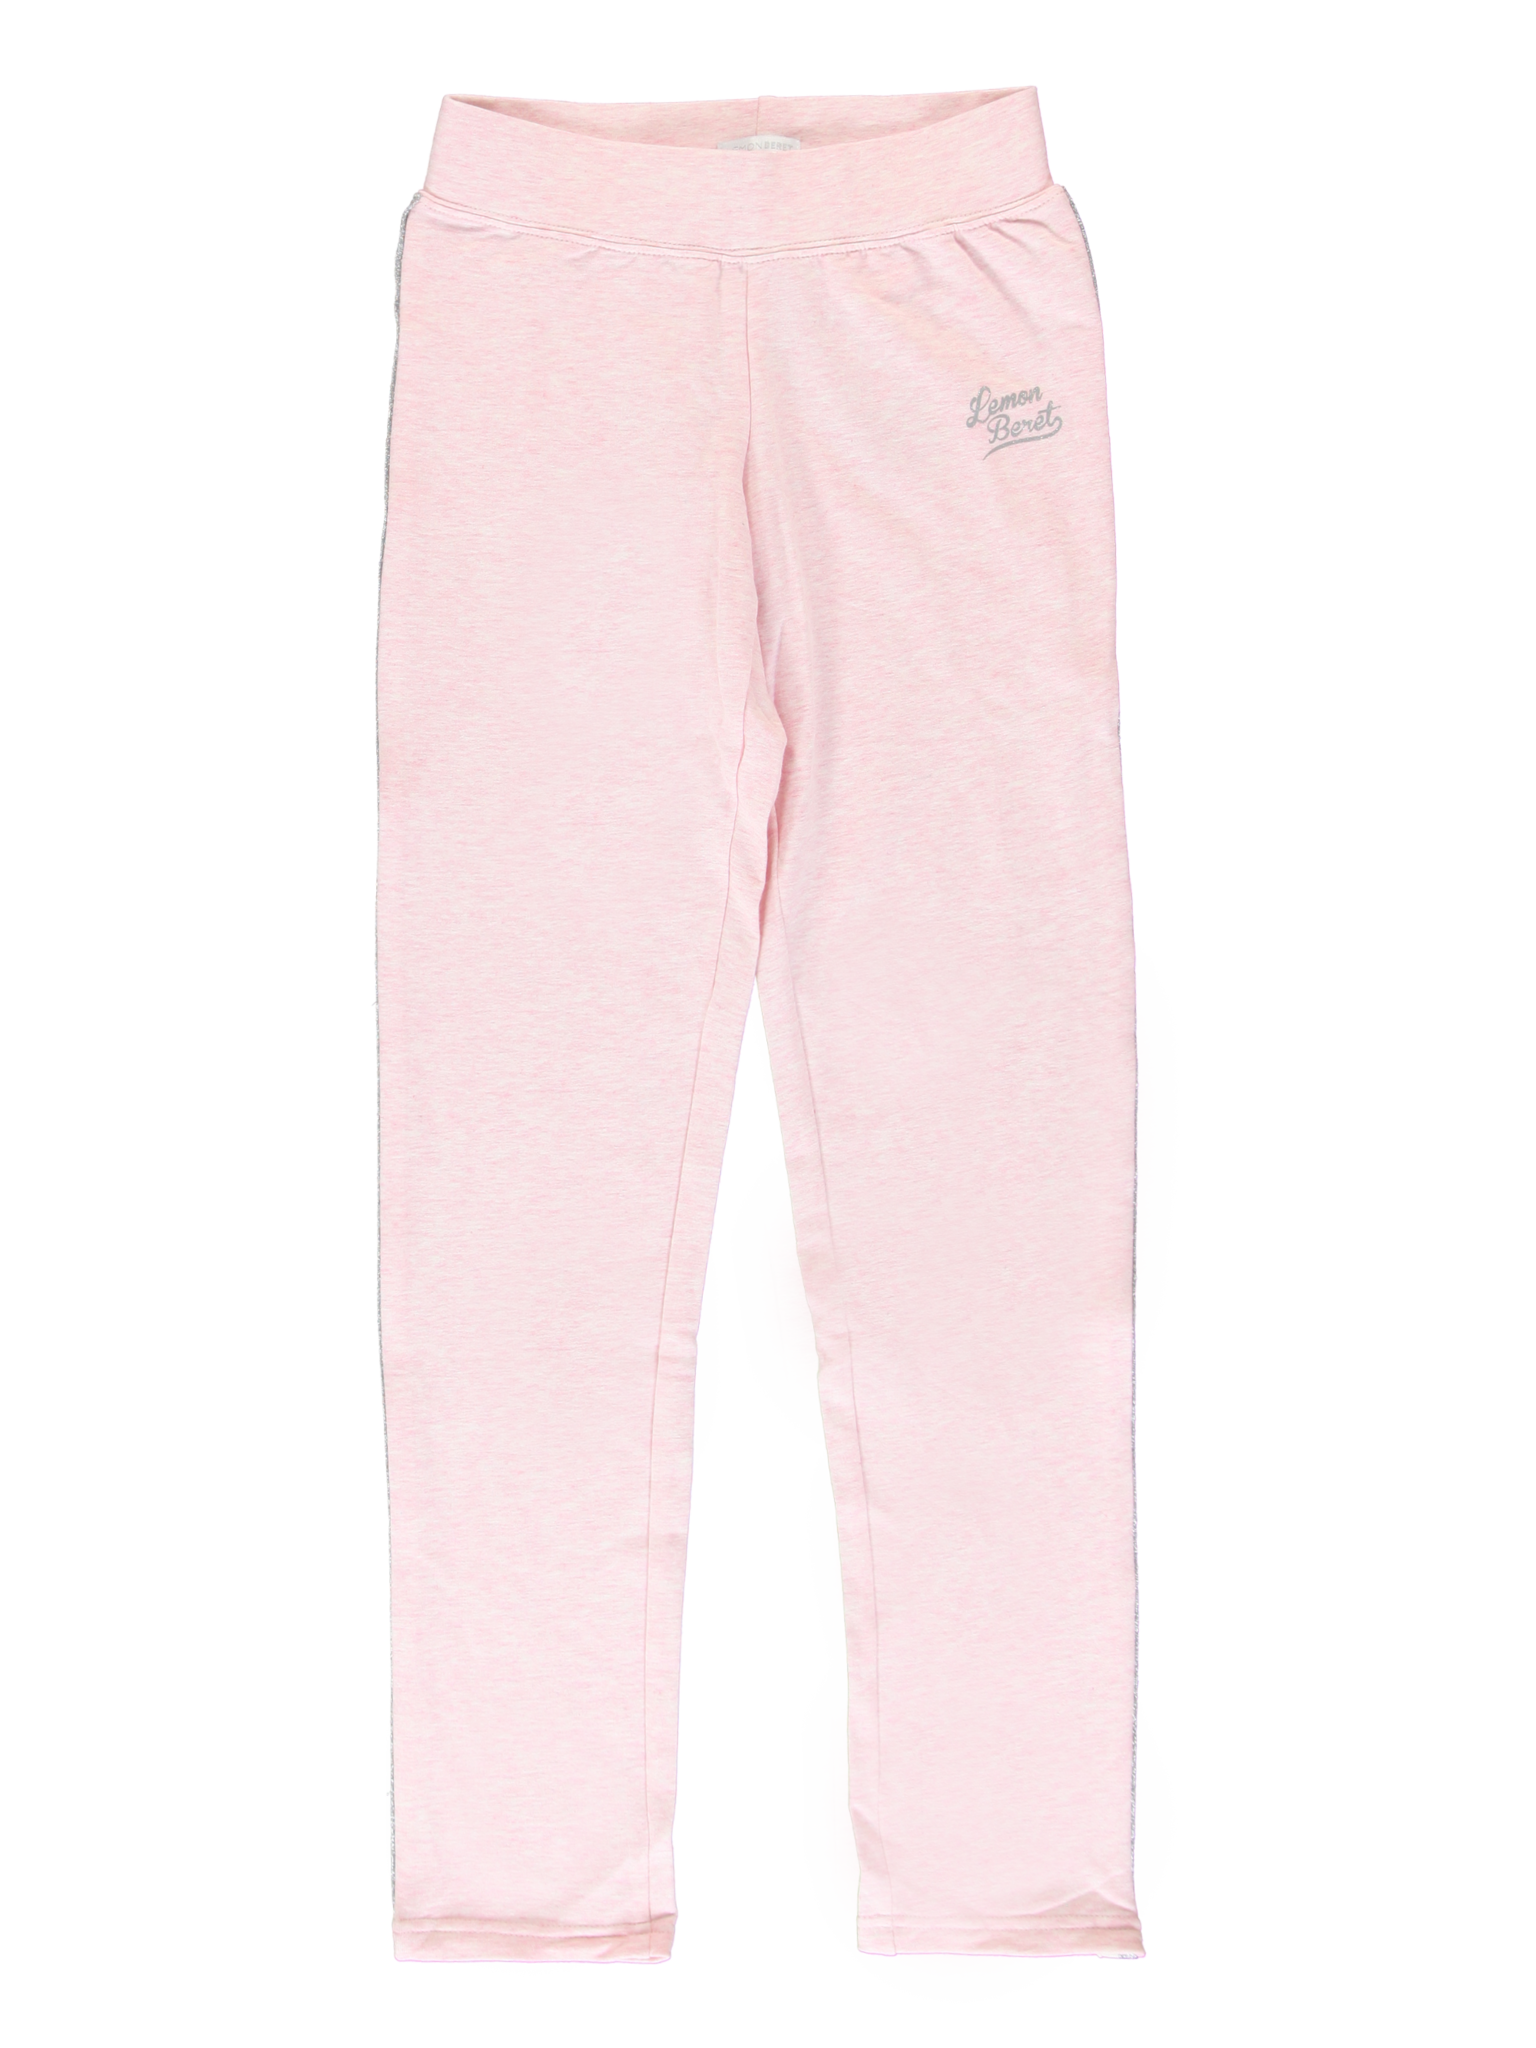 All Brands | Summerproducts Teen Girls | Jogging Pant | 10 pcs/box